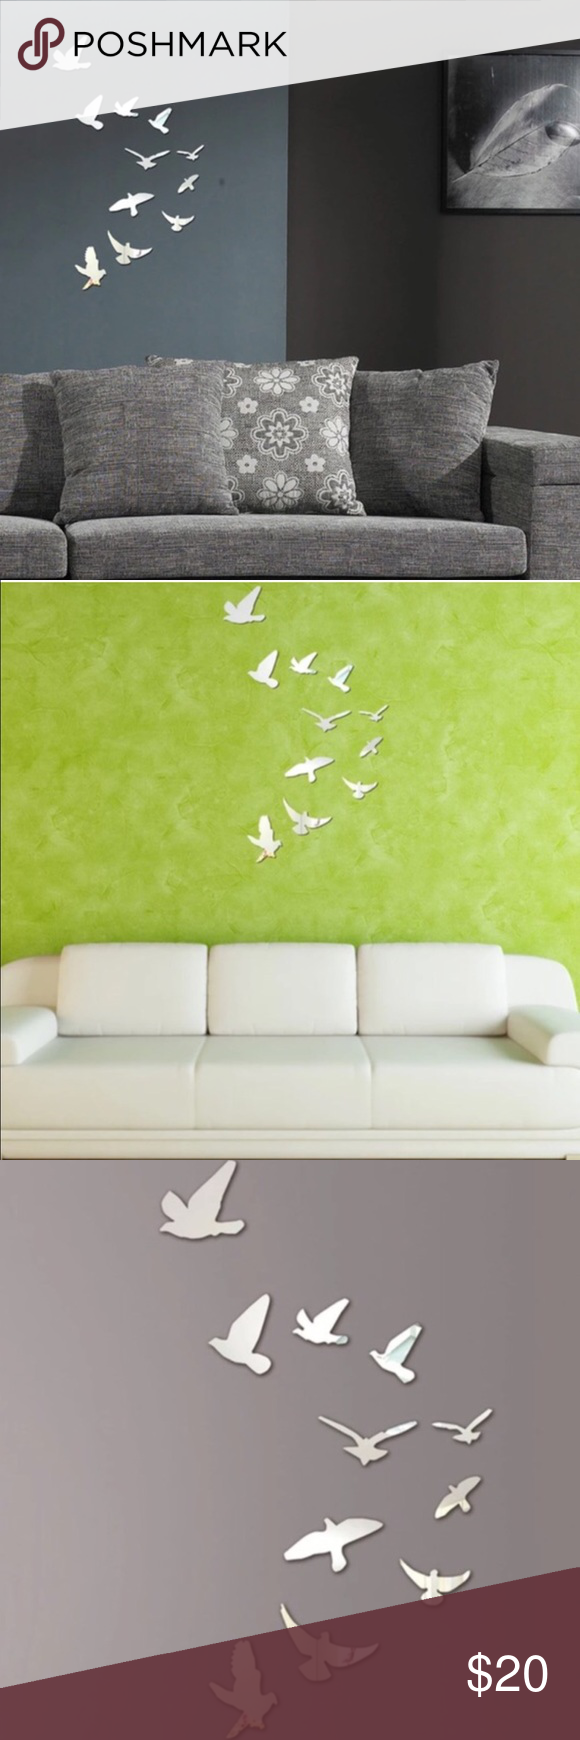 ✨Bird mirror wall set🎁 Decorate any part of your home with this adorable 10pc mirror bird set Urban Outfitters Other